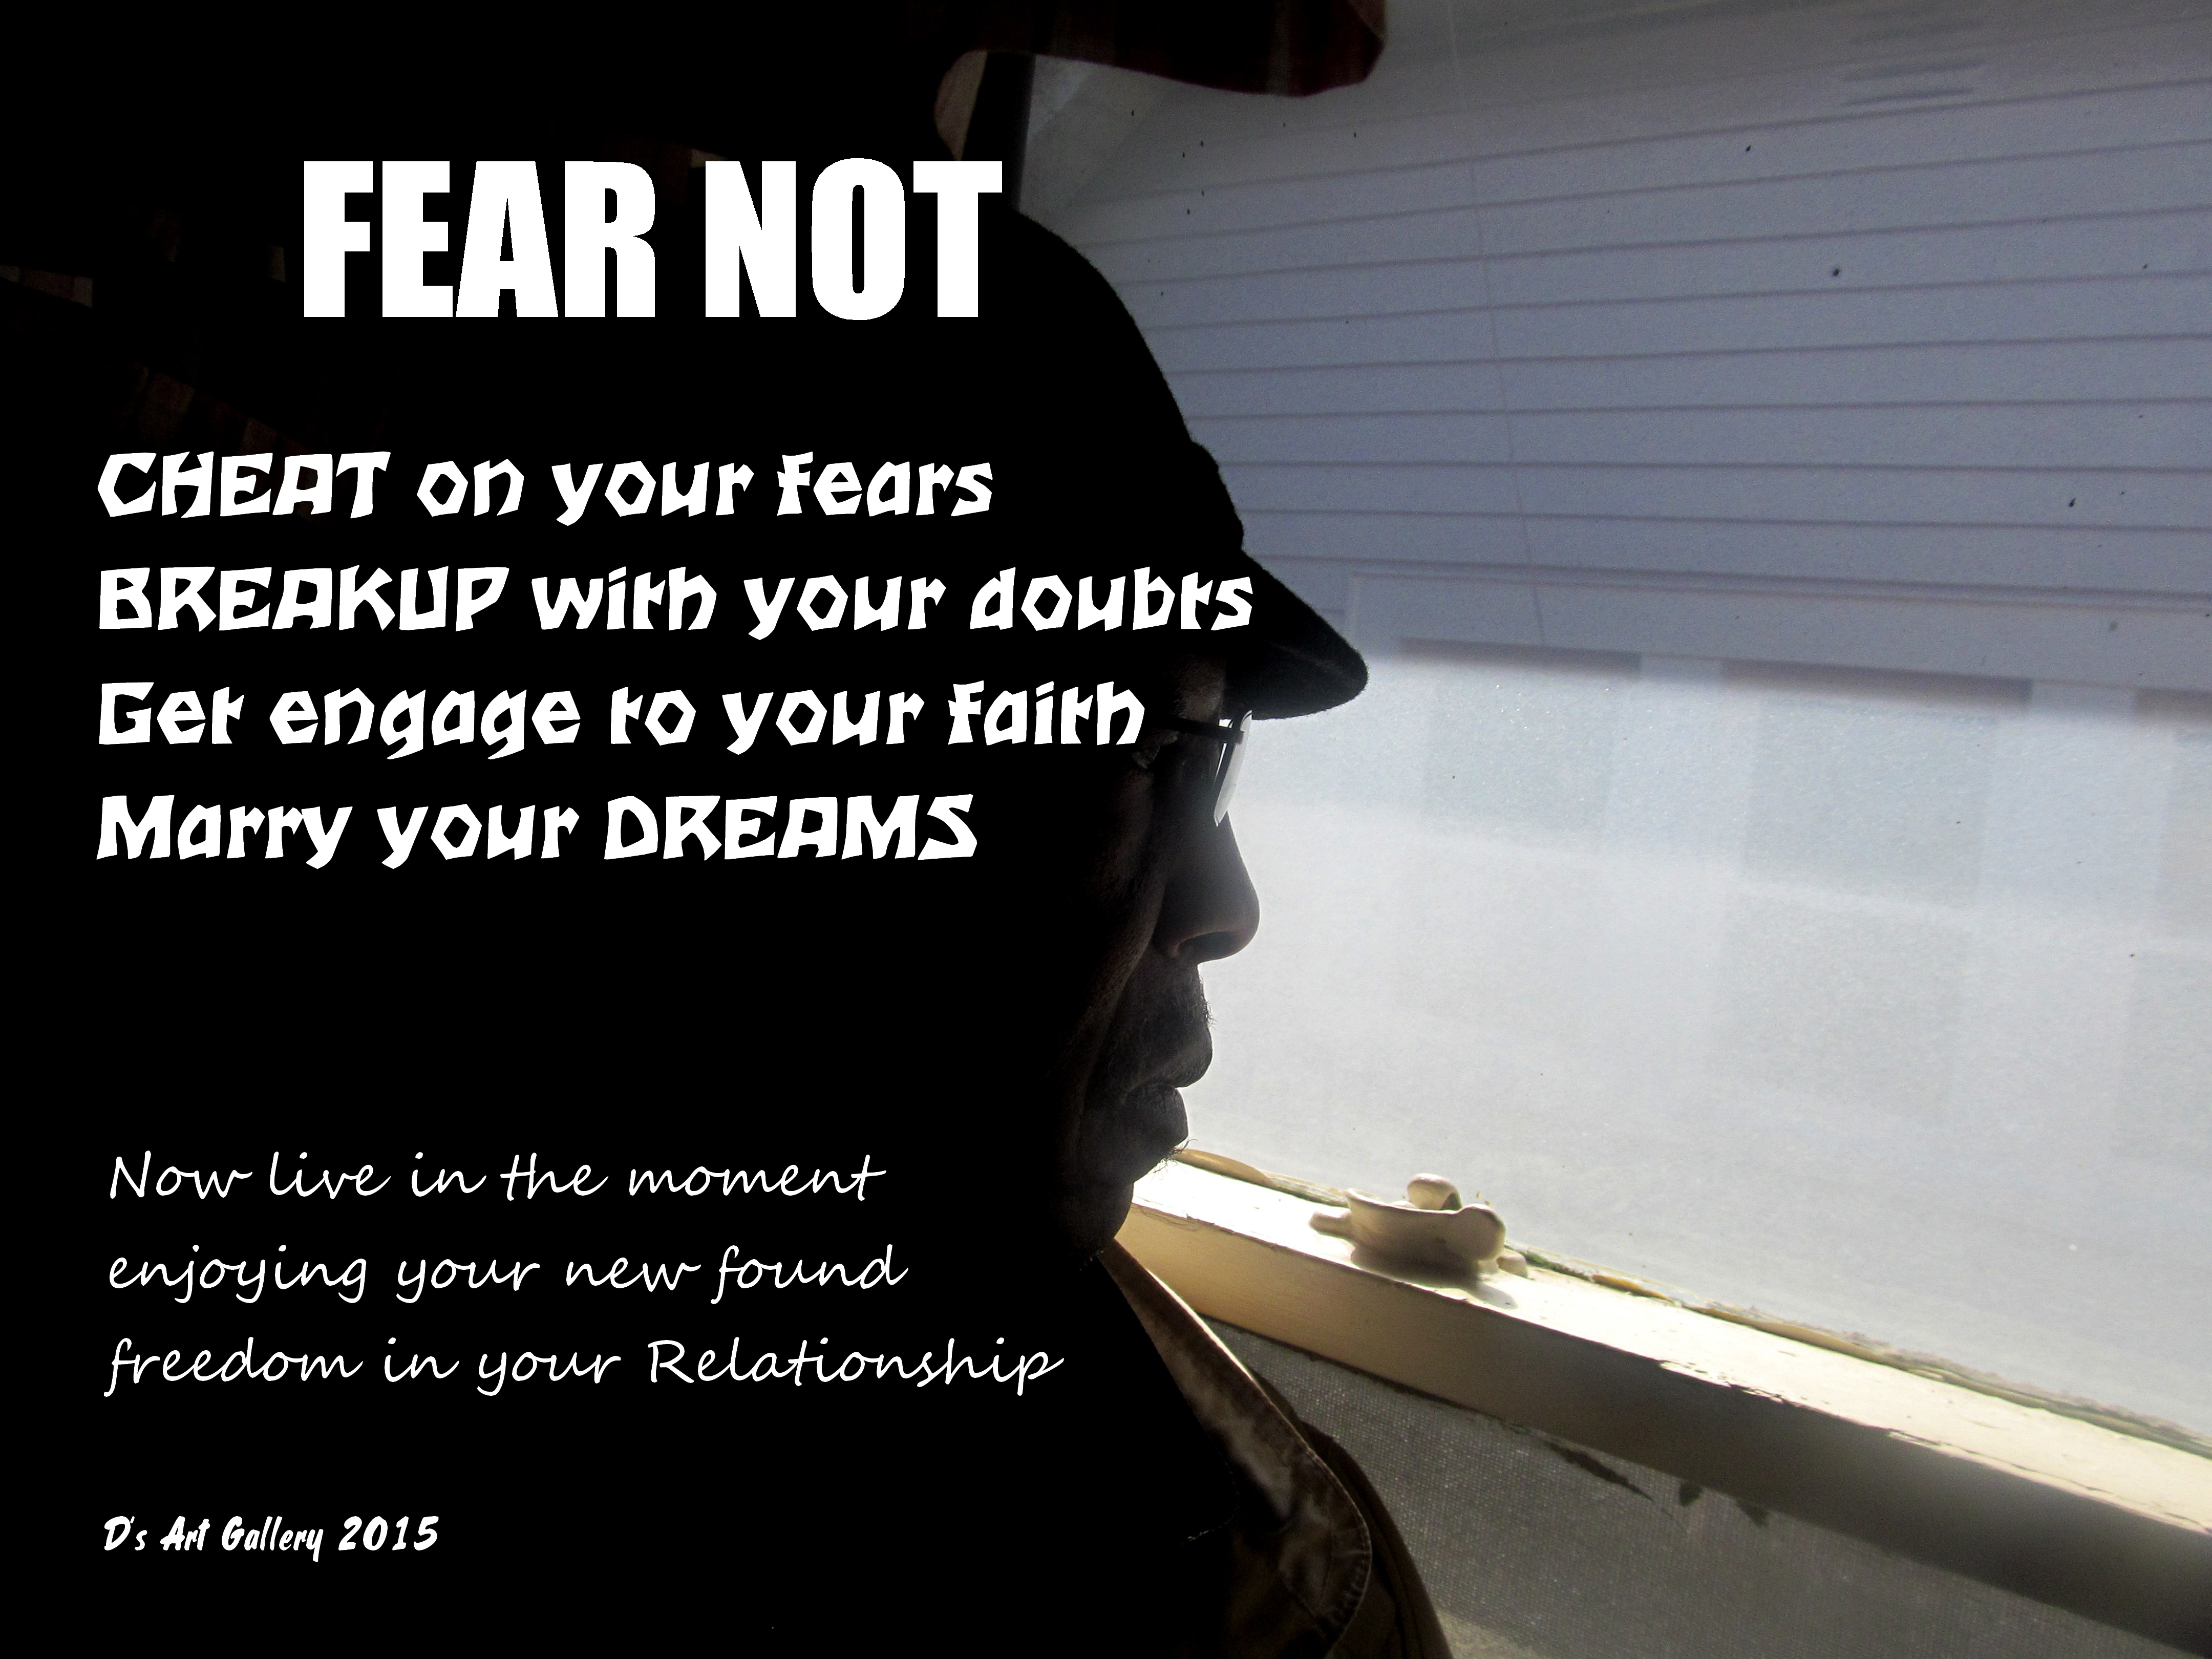 OVER COME YOUR RELATIONSHIP FEARS (Photo by Pastor Davis)